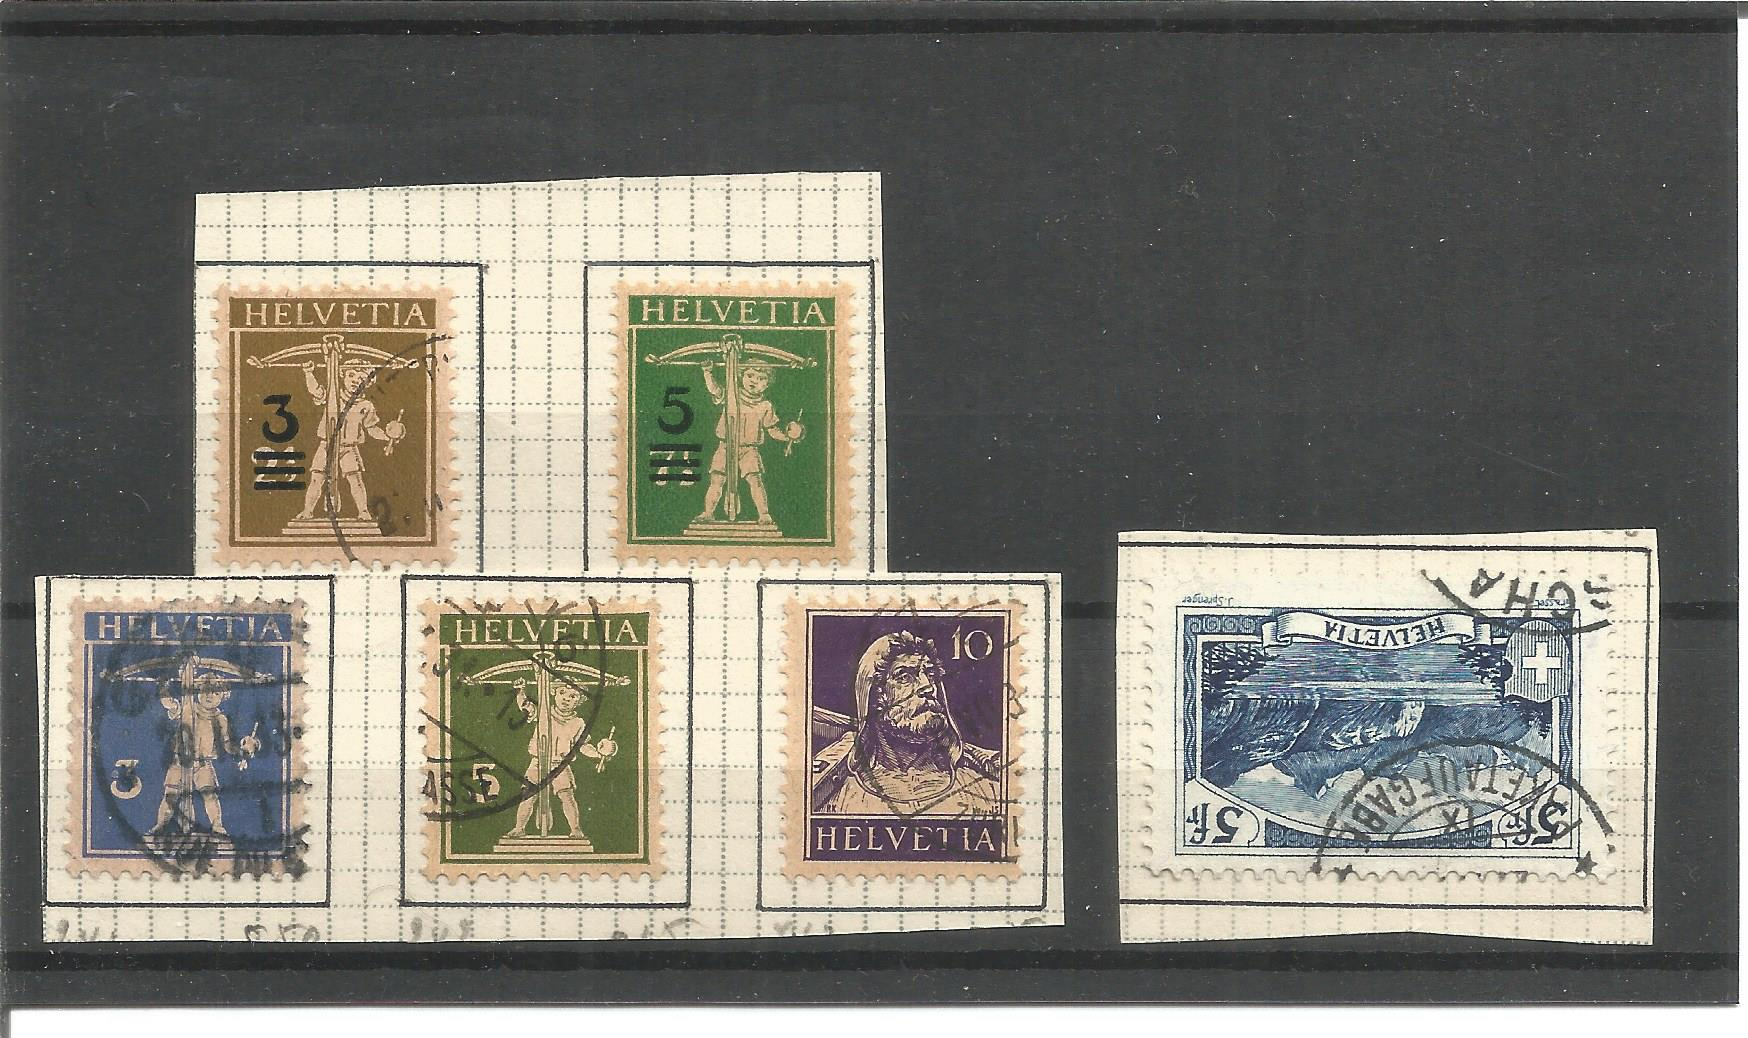 6 Swiss stamps on stockcard. Good condition. We combine postage on multiple winning lots and can